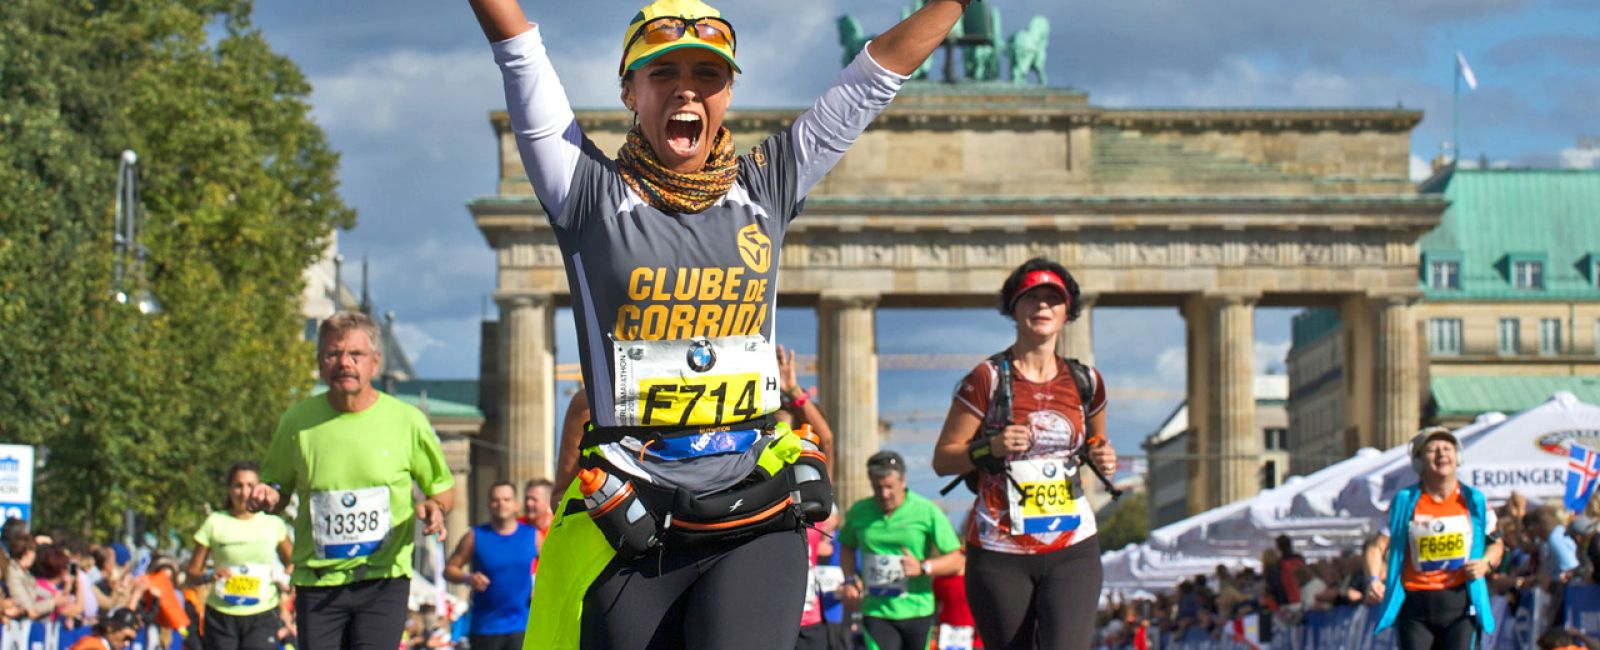 Foto: Marathonläuferin vor dem Brandenburger Tor in Berlin